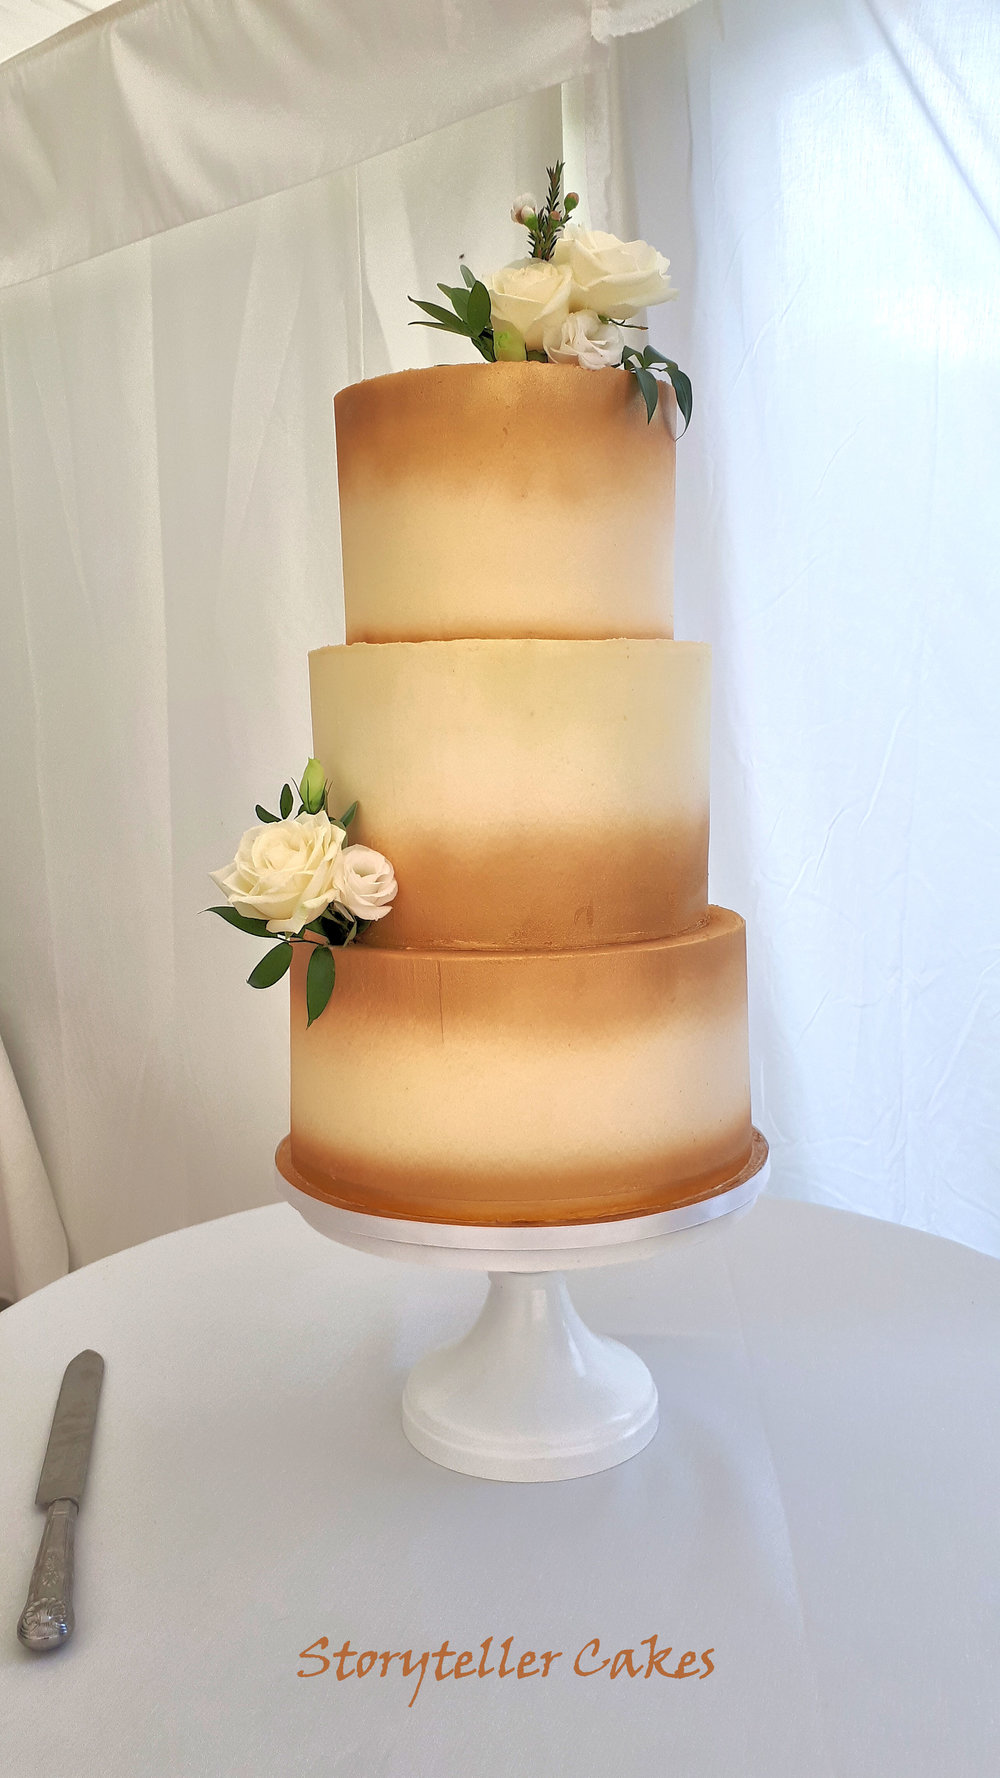 Gold and white buttercream rose wedding cake.jpg